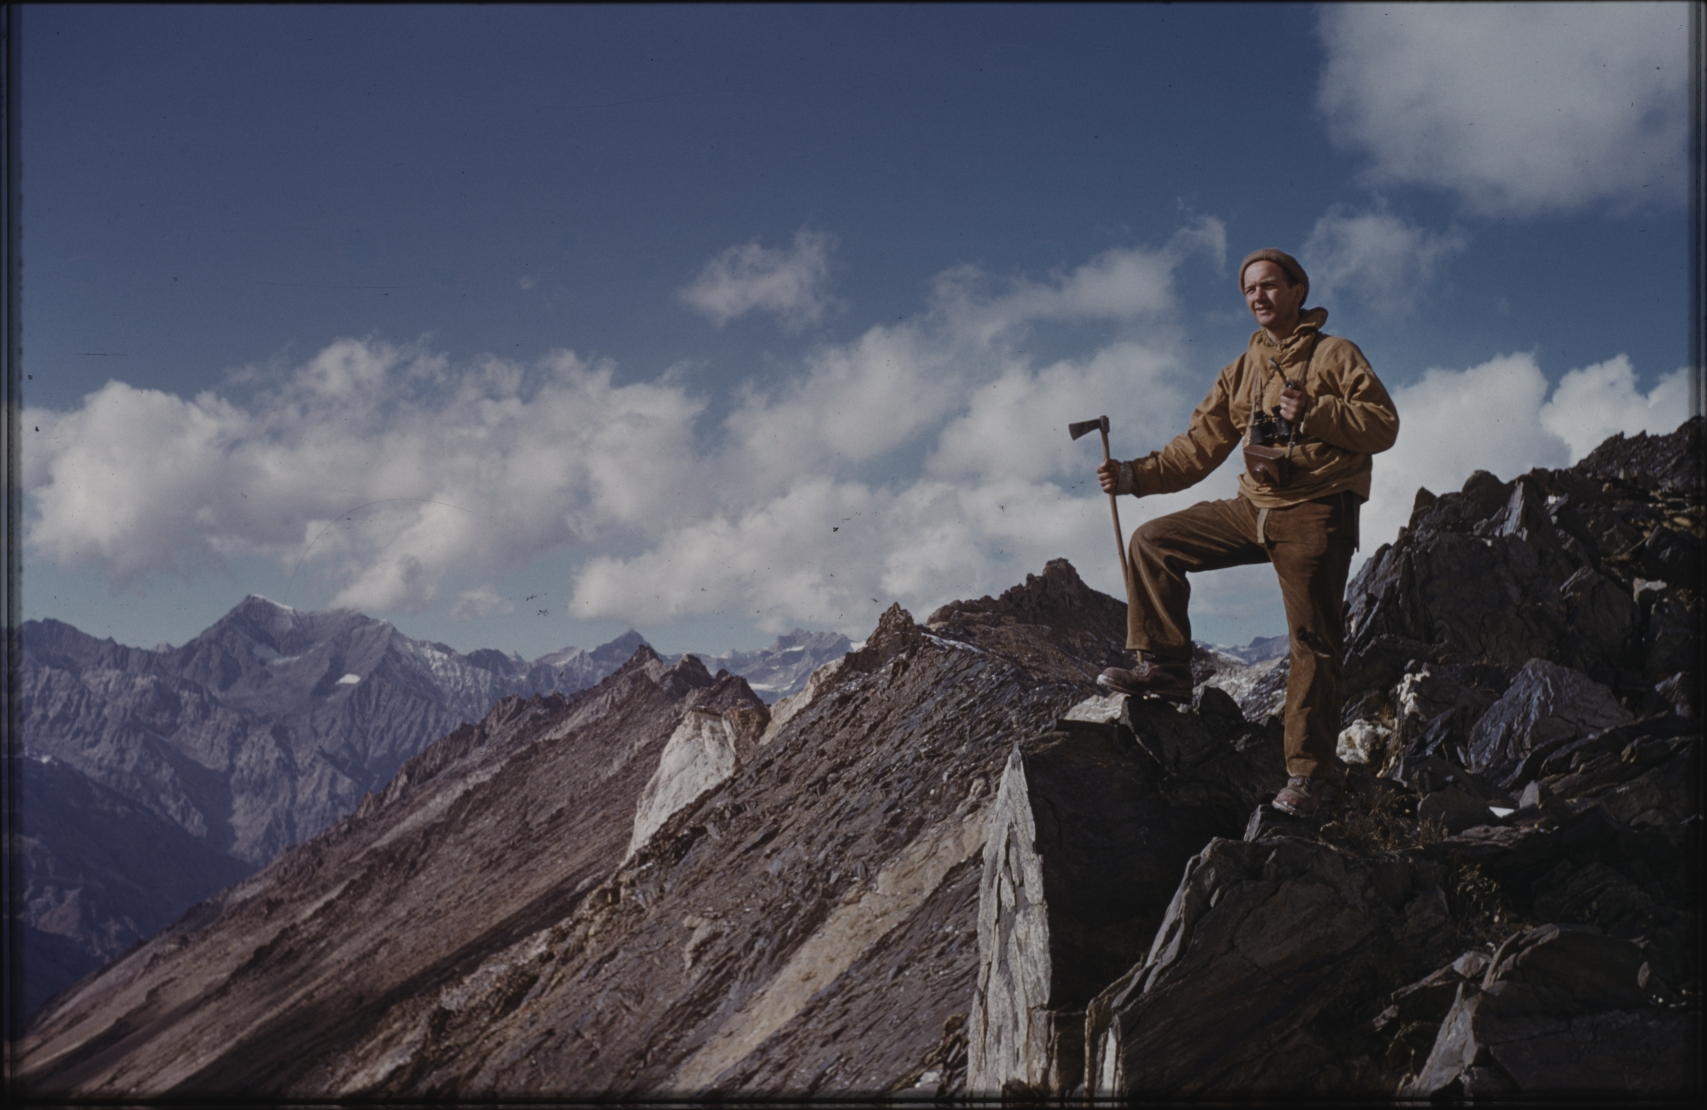 Klaus Ferdinand overlooking the mountains. This his first expedition to Afghanistan came to have a decisive influence on his future career. The Henning Haslund-Christensen Memorial Expedition, 1953-'55. Photo: the Moesgaard Museum archives